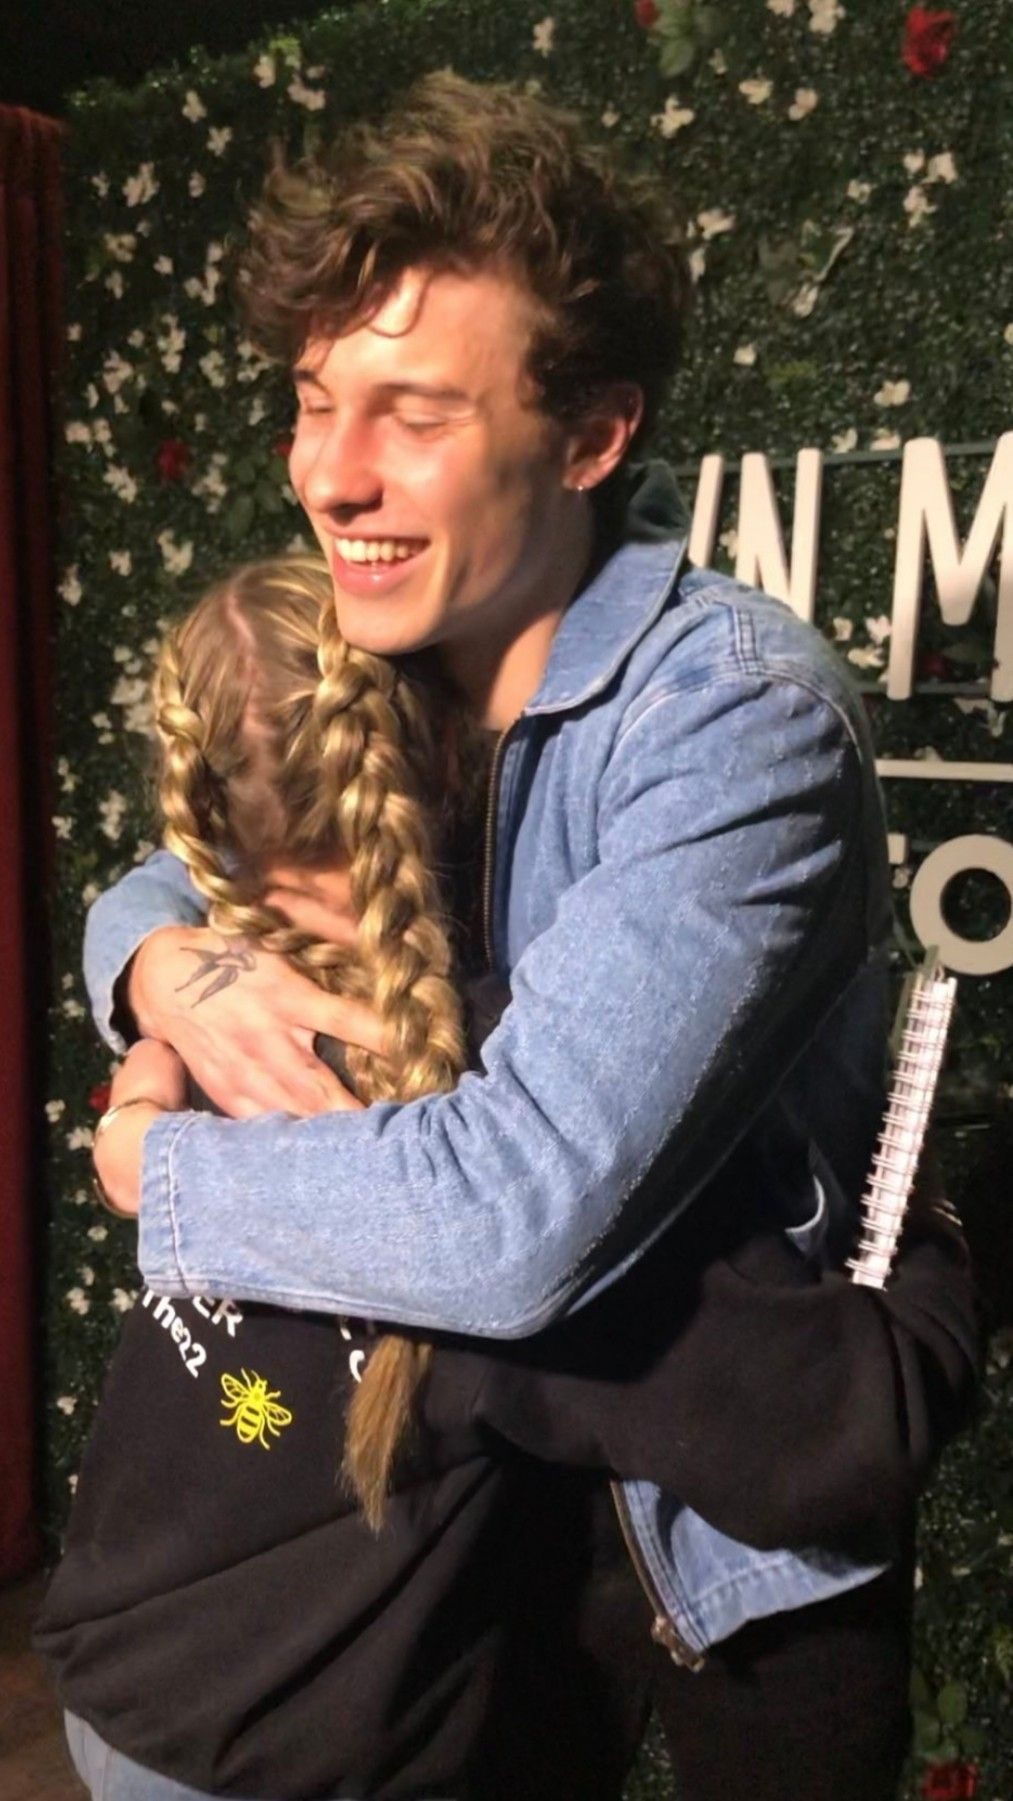 Pin by Celena Perkins on Shawn Mendes in 2019 | Shawn mendes